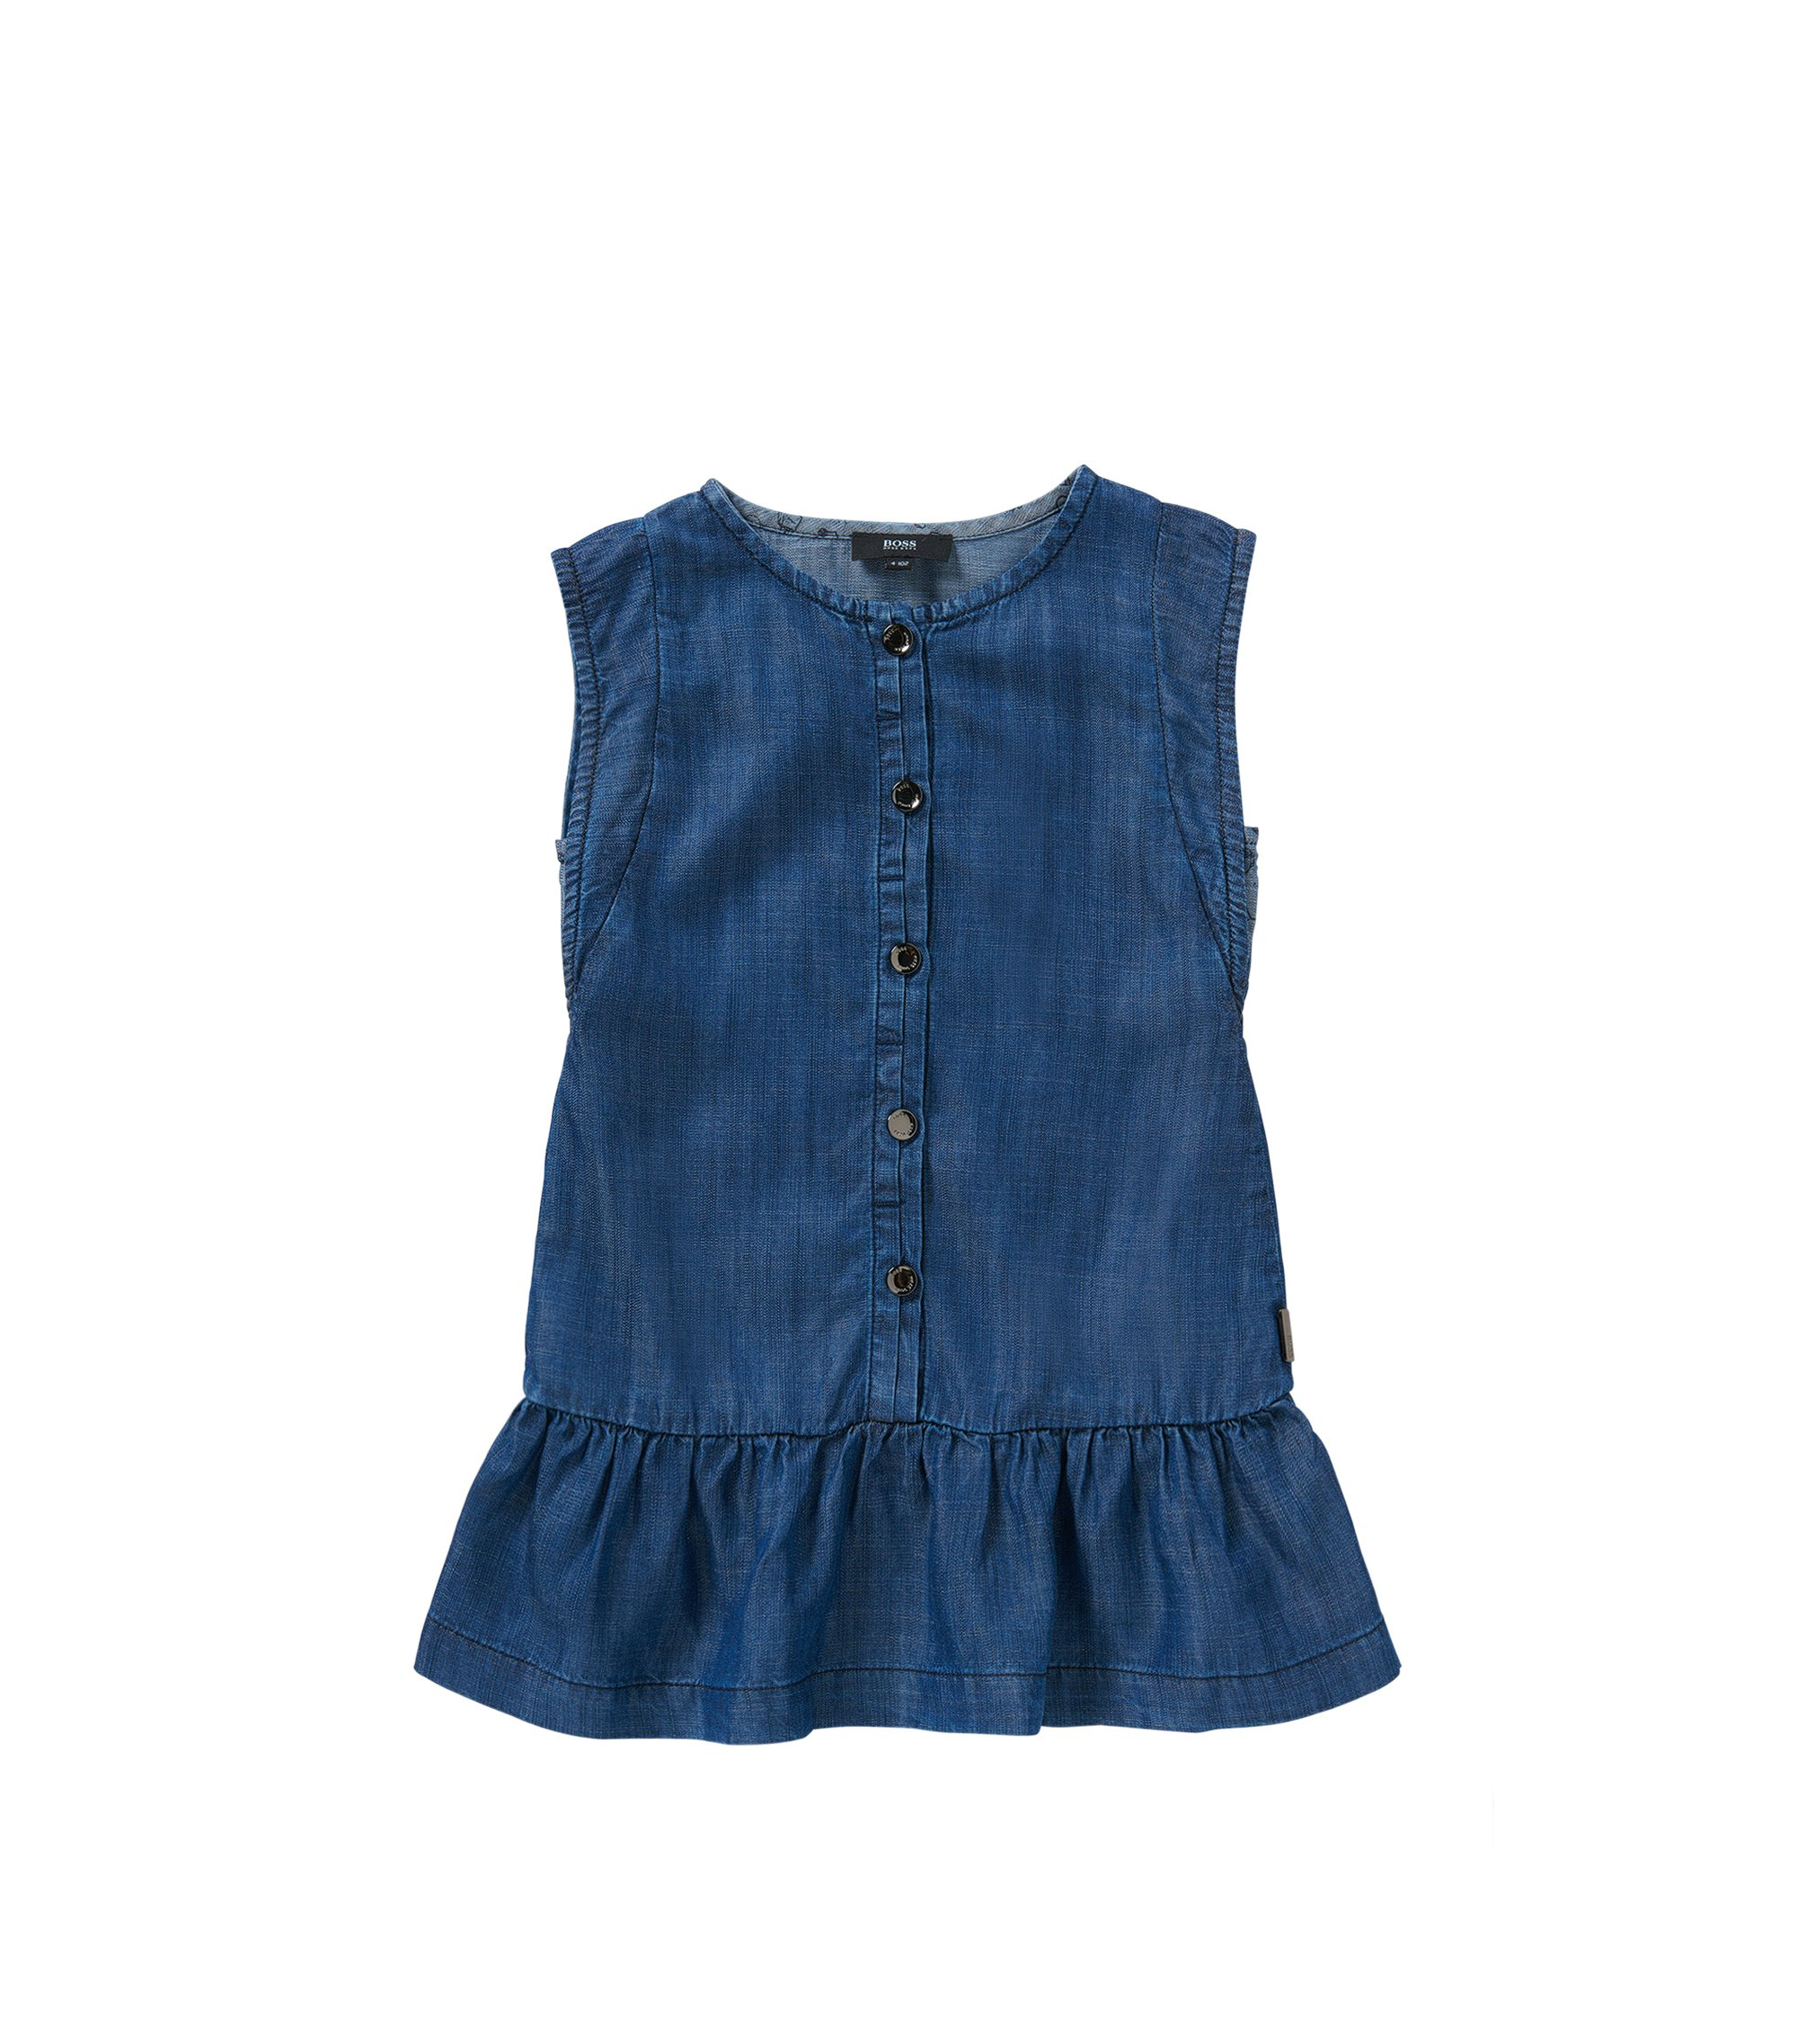 Abito in look denim per bambine: 'J12149', Blu scuro